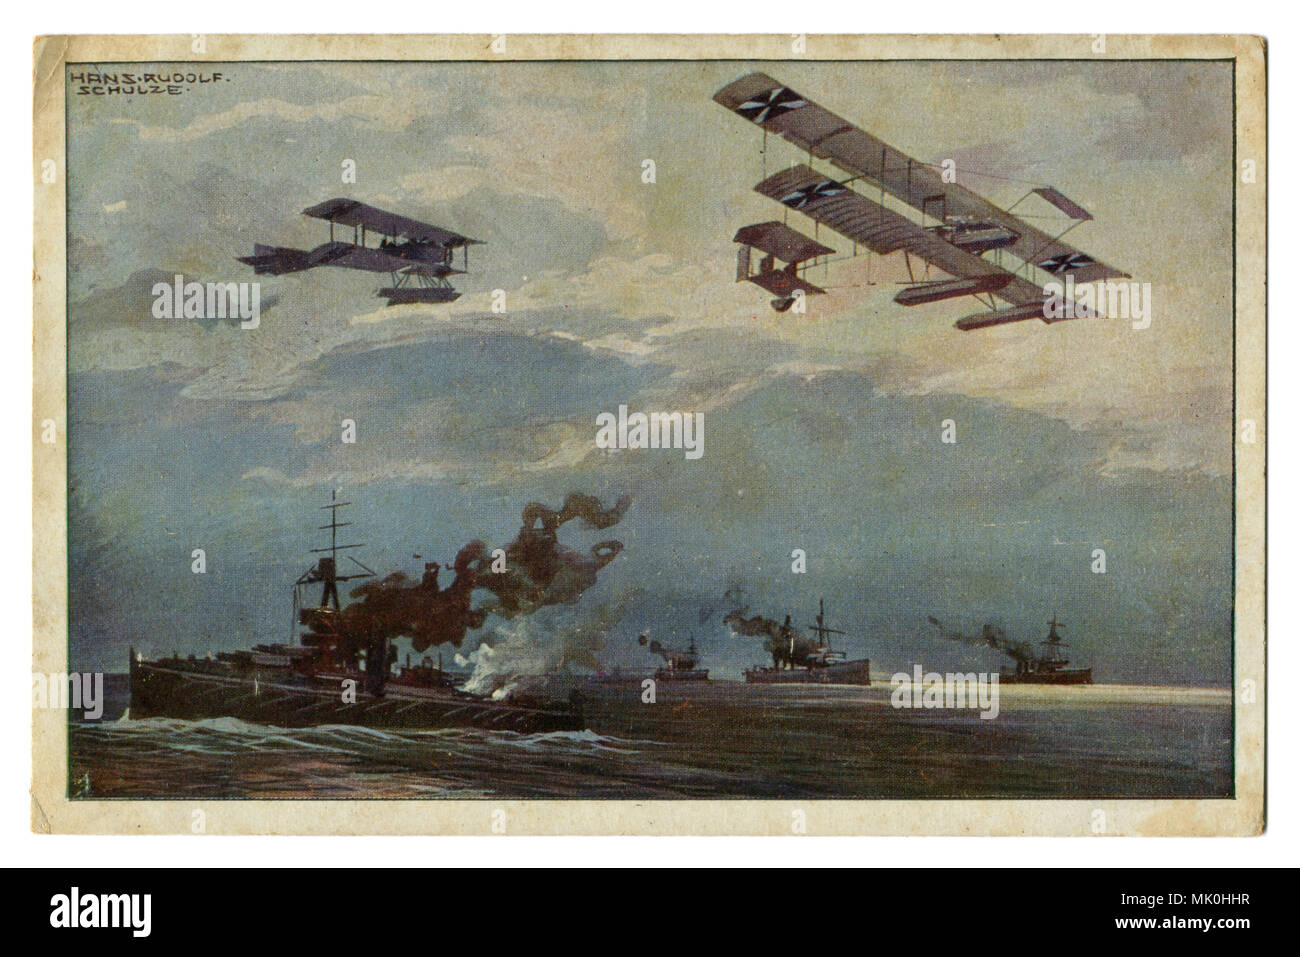 Old postcard: German military aircraft over the British fleet. Airplanes over warships. The first world war of 1914-1918, Western front, wwi Stock Photo